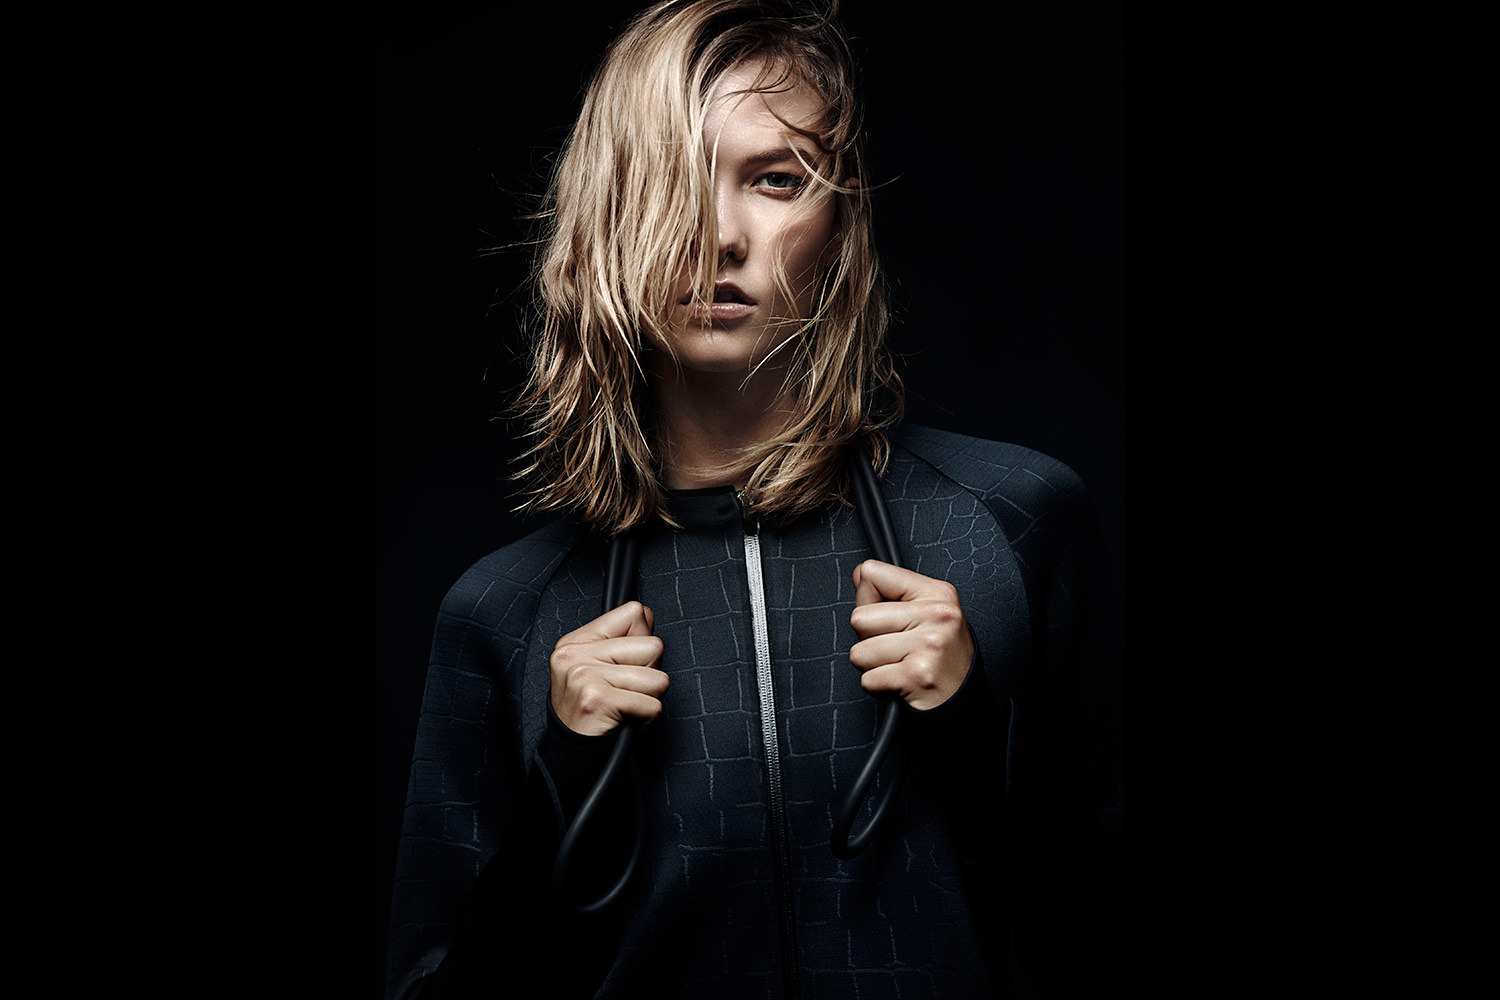 nike-pedro-lourenco-collection-karlie-kloss-01